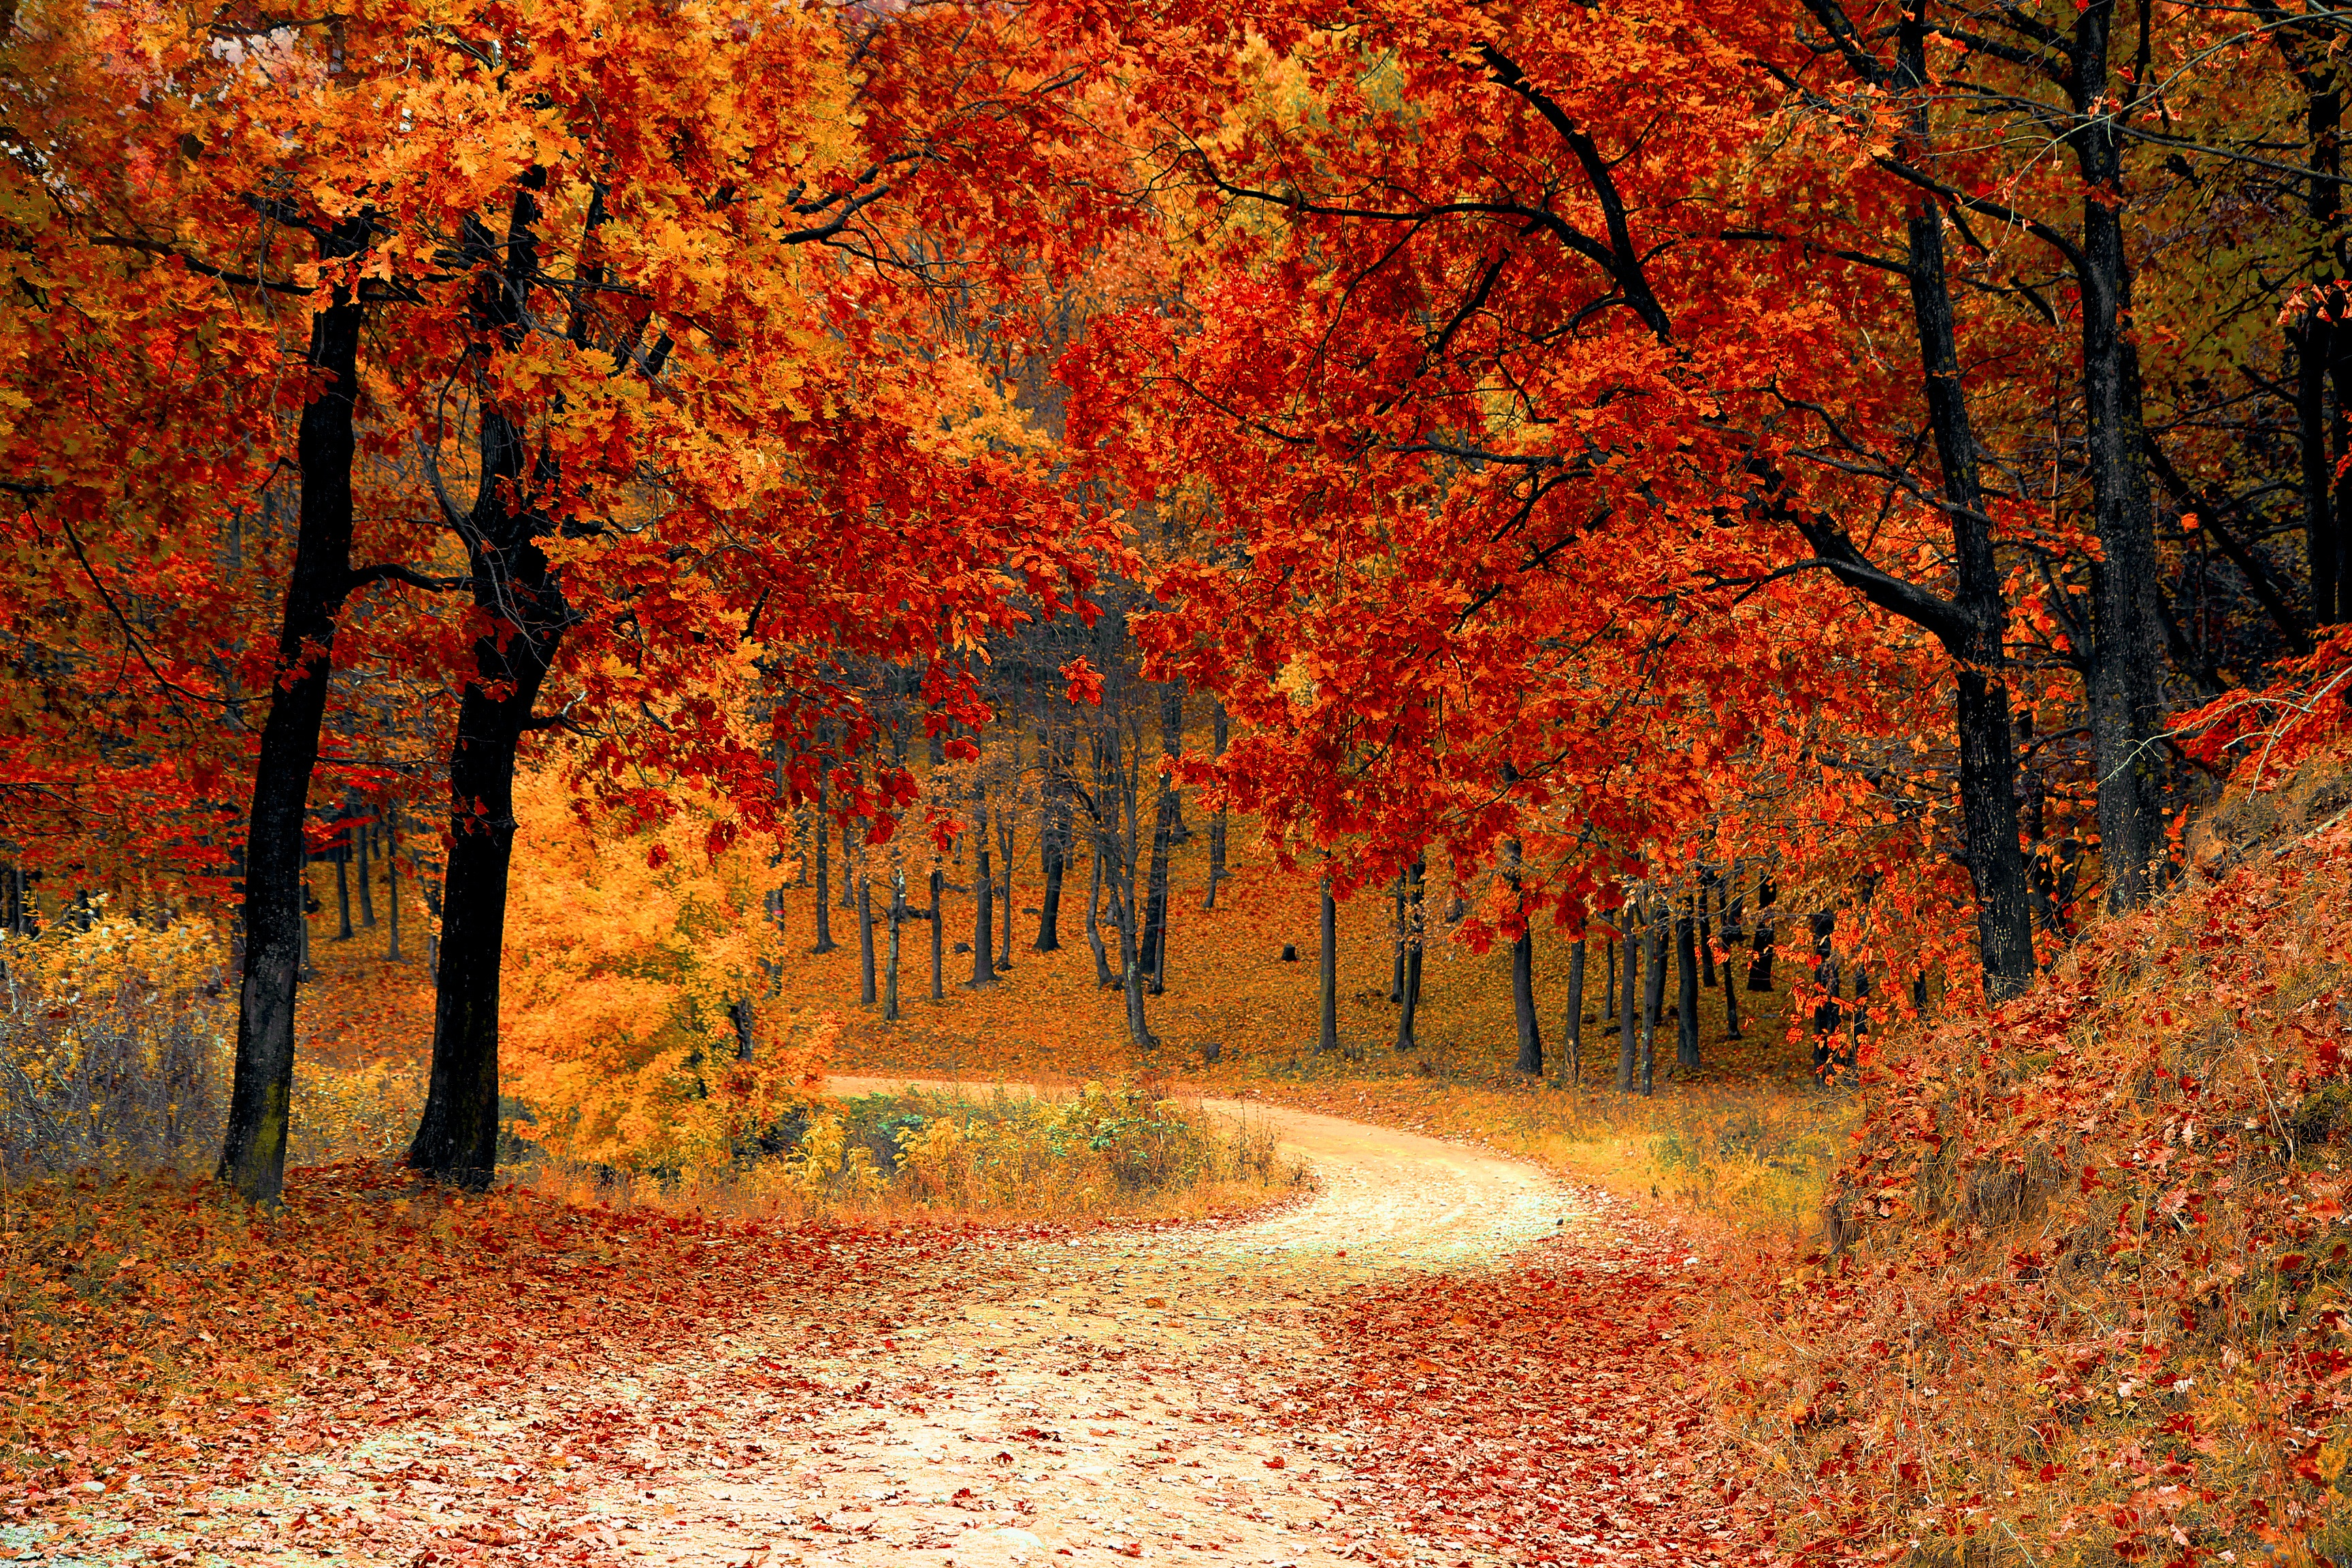 154193 download wallpaper Nature, Autumn, Forest, Path, Foliage, Park, Colorful, Colourful screensavers and pictures for free